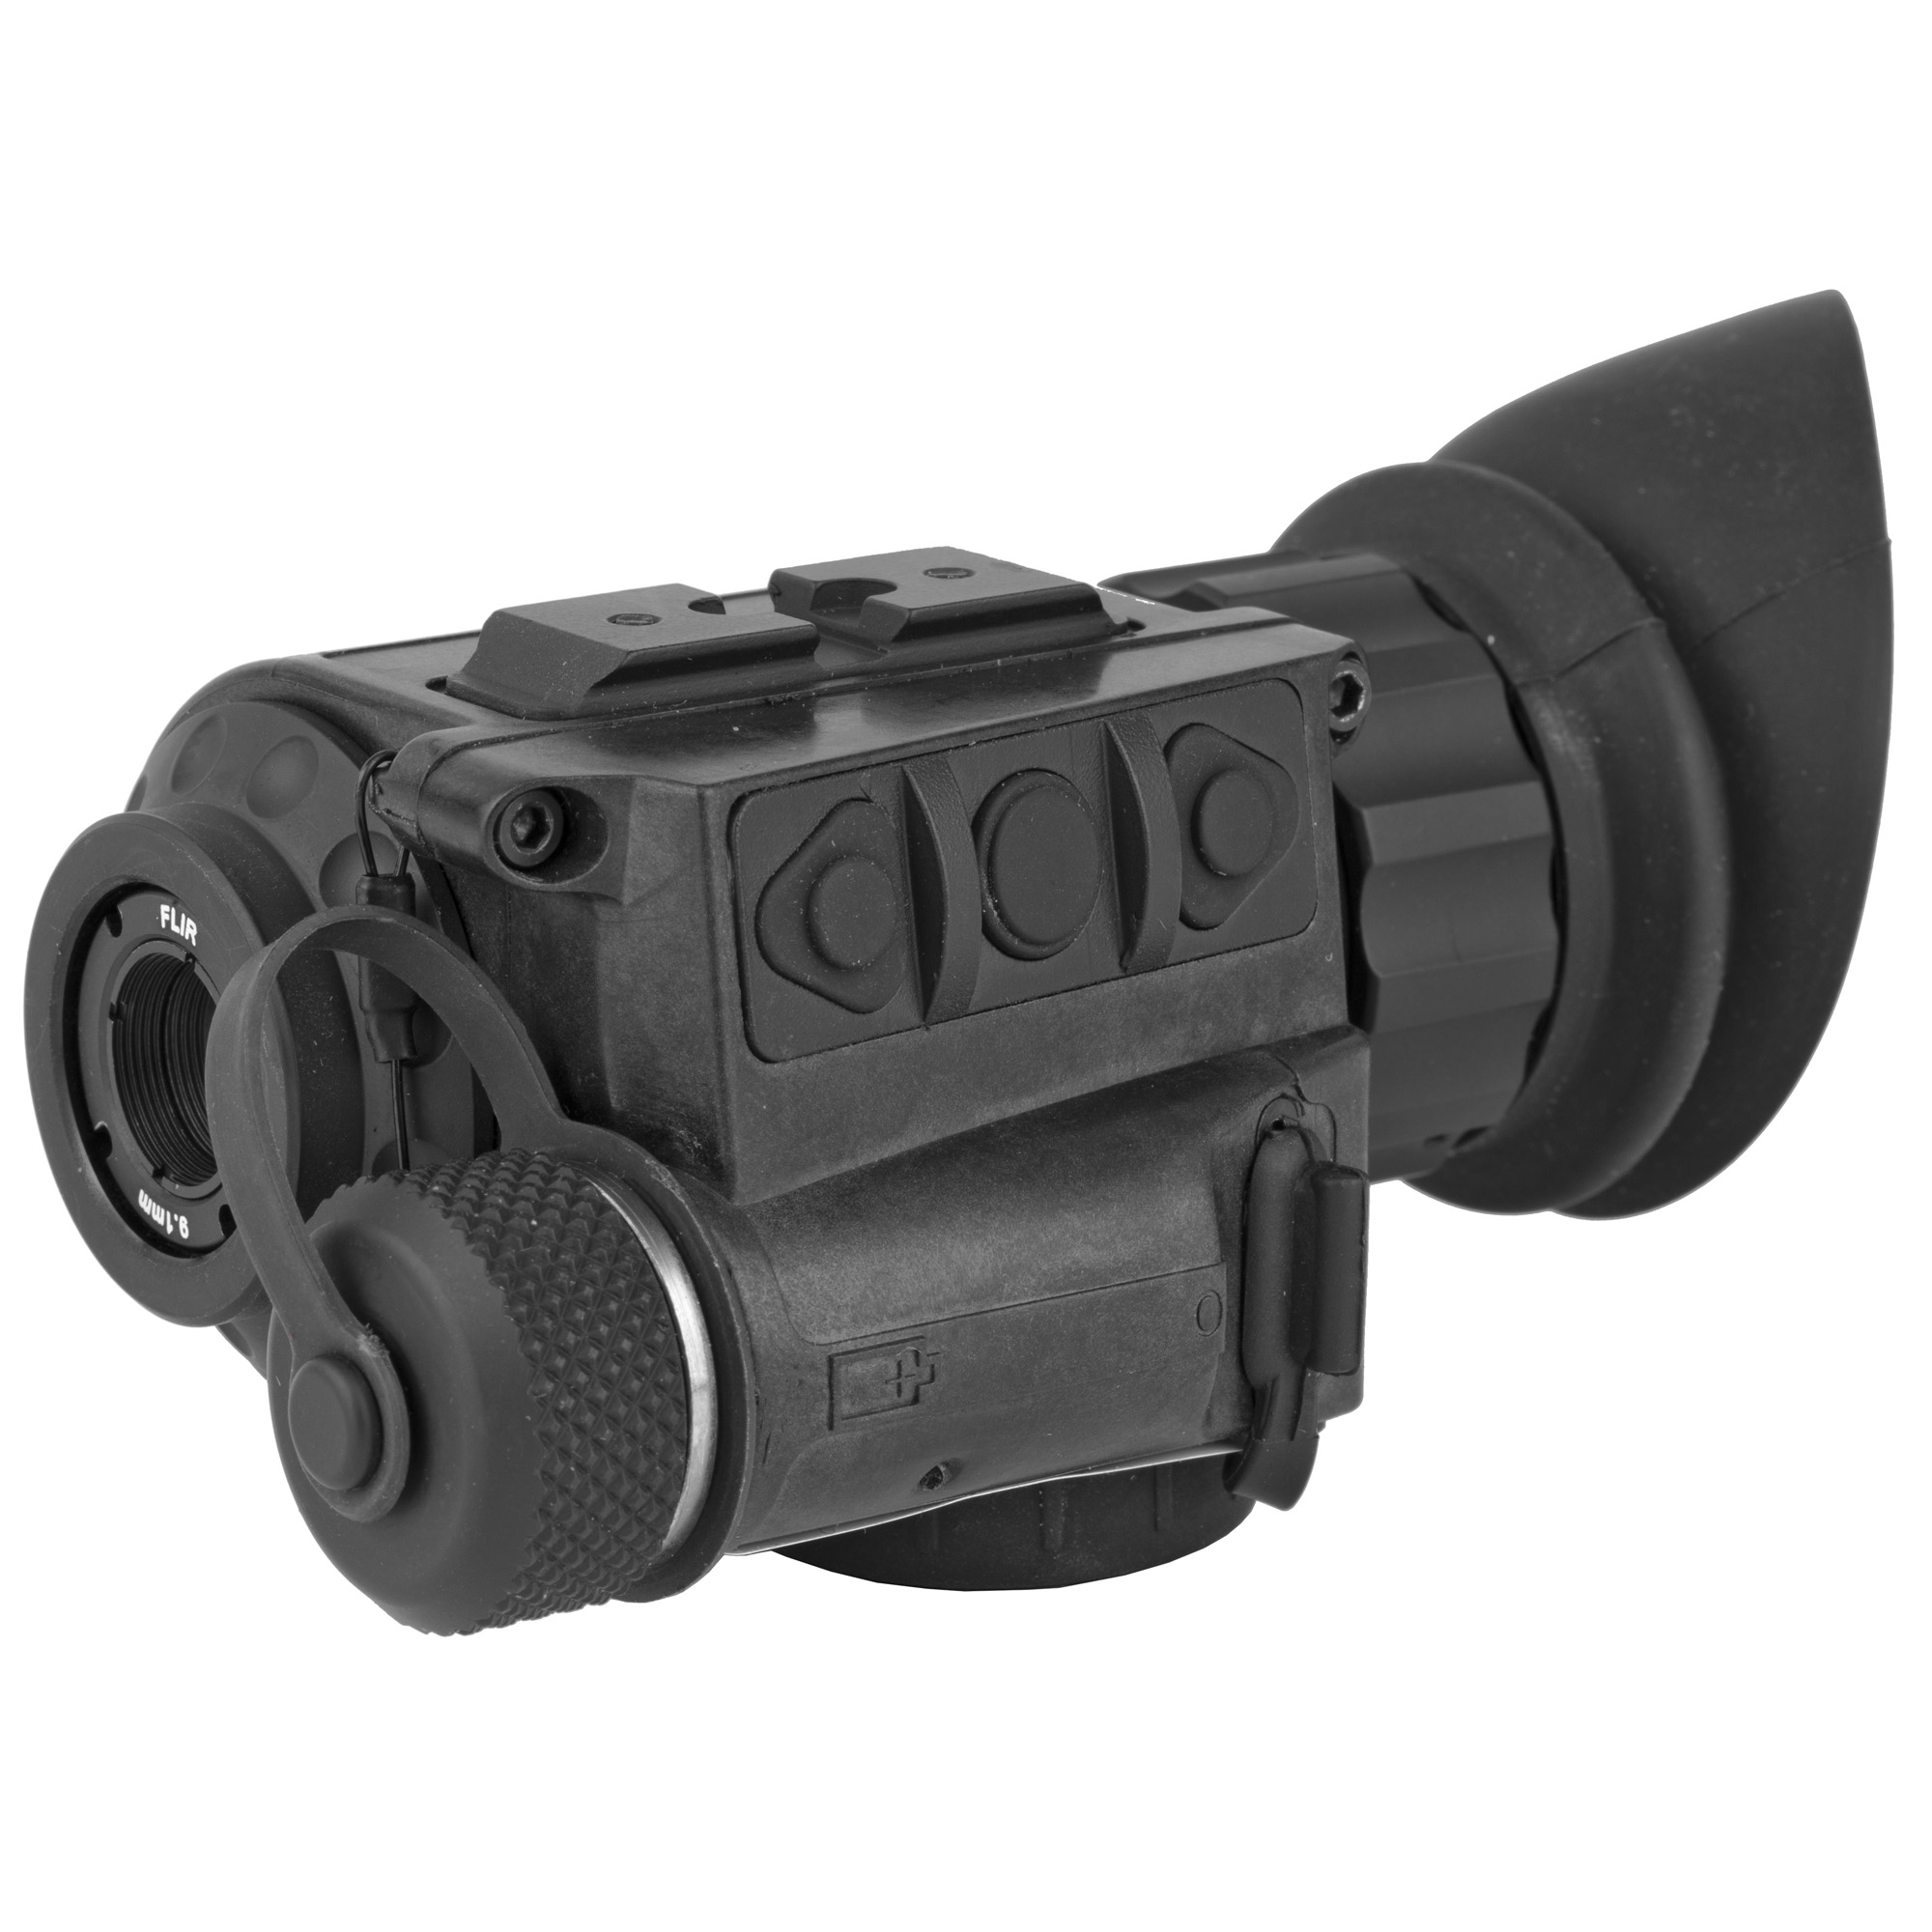 """Built for the rigors of law enforcement"""" the FLIR Breach PTQ136 spots the heat of suspects and objects in total darkness. Featuring the new FLIR Boson core and a compact design"""" the FLIR Breach offers unmatched tactical awareness. Weighing only 7.4 ounces (210 grams)"""" the FLIR Breach can be concealed in a pocket or mounted to a helmet with its mini-rail feature"""" while adding minimal weight to officers' heavy gear. Additional features include onboard recording and seven palettes for fast detection of suspects or evidence"""" day or night."""